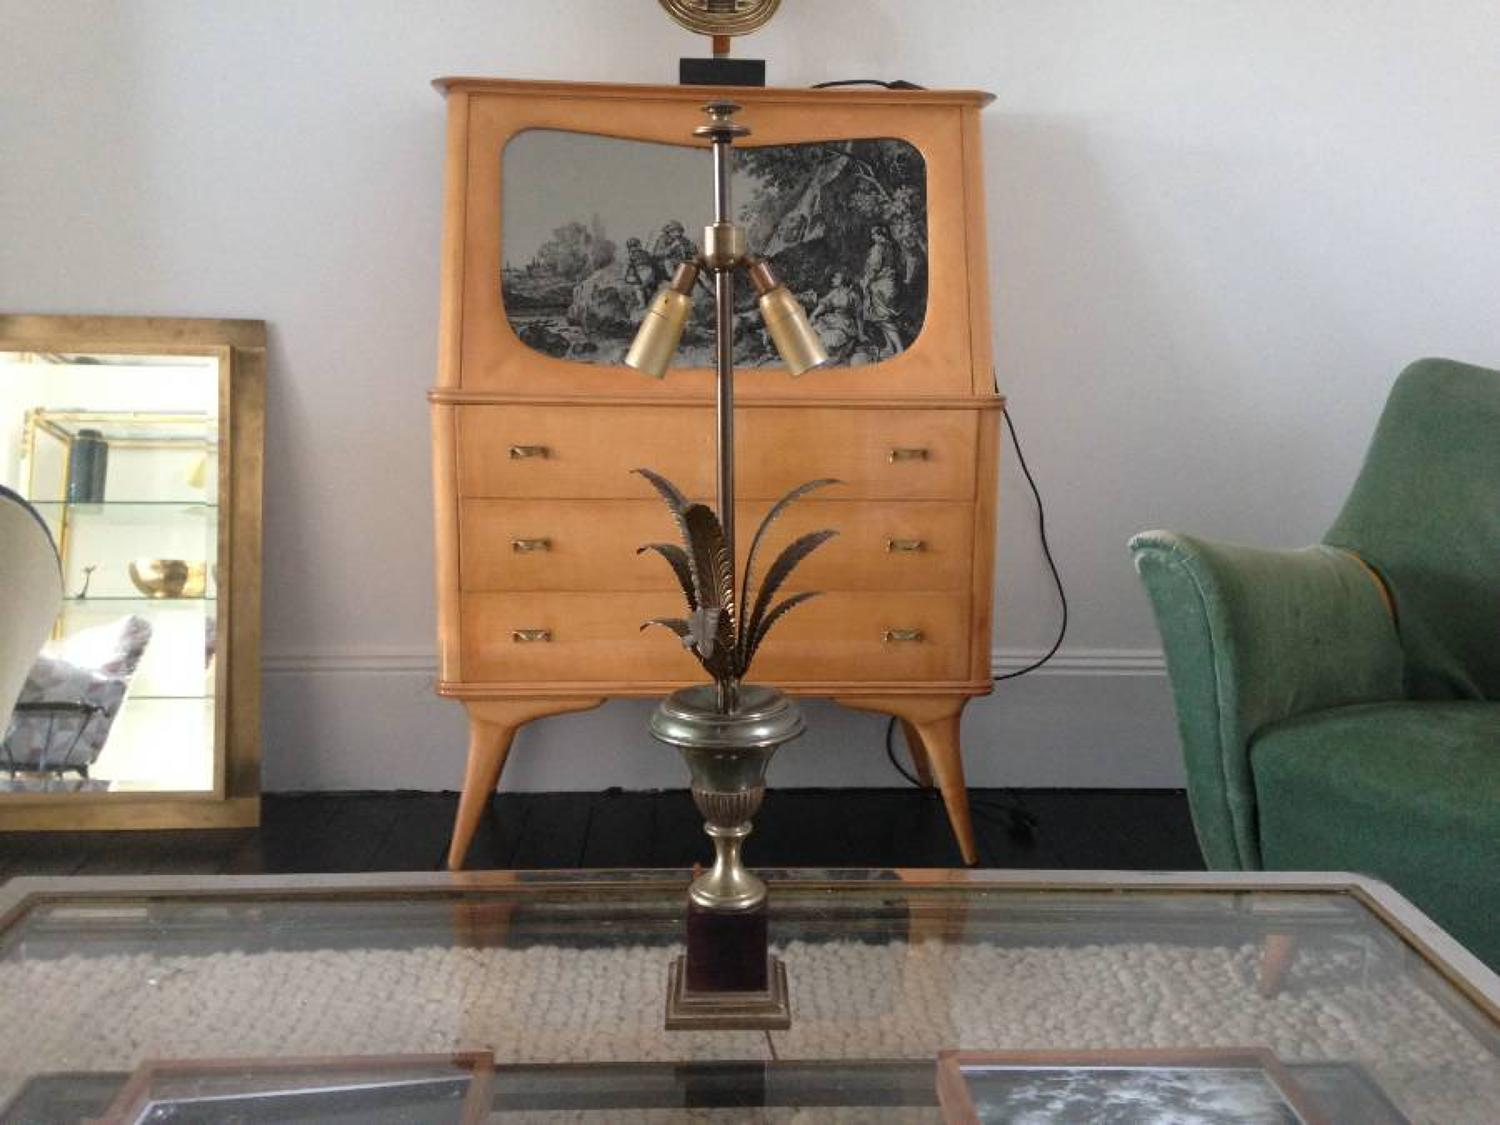 Brass and steel pineapple frond lamp